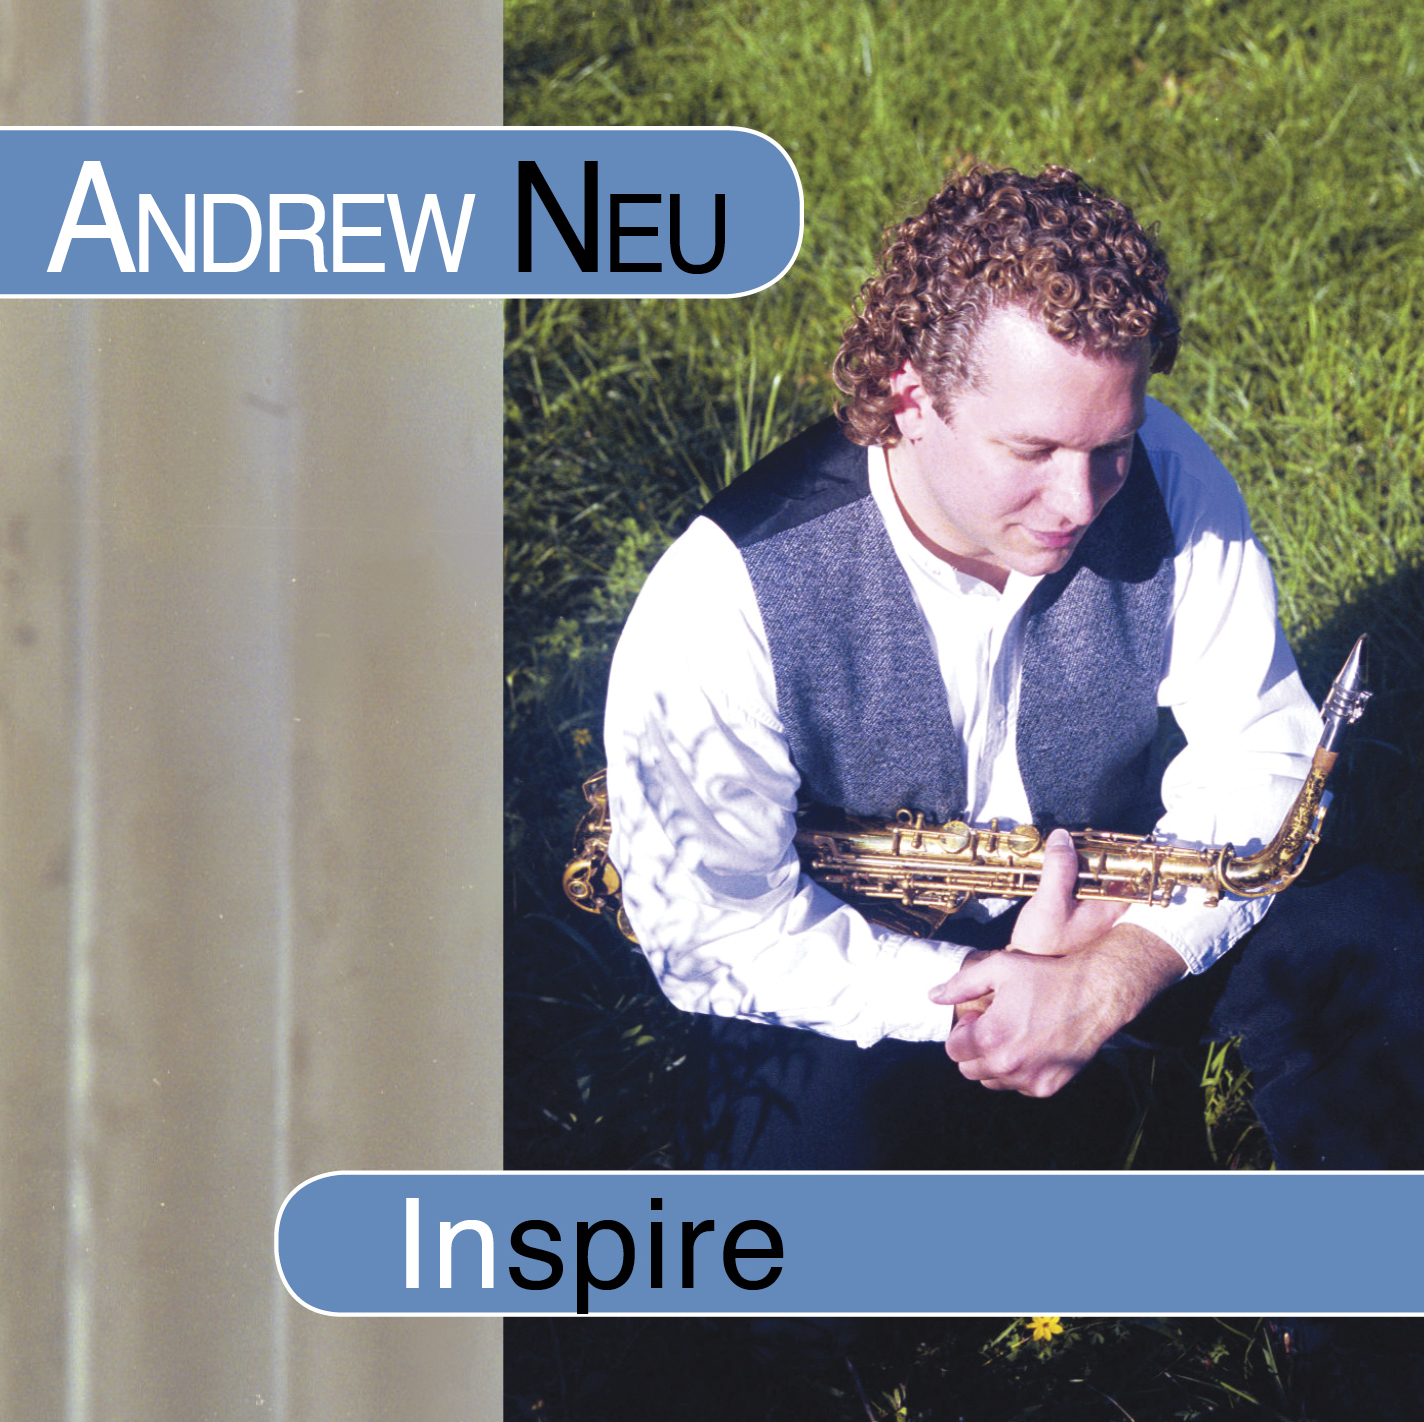 Andrew's first CD,  INSPIRE , was released in 2000 and brought together some of the best musicians of the Philadelphia/Atlantic City area. This album put him on the national scene and several tracks have remained mainstays on smooth jazz radio to this day. Pooling all of his talent and experience, this eclectic and adventurous project is highlighted by strong compositions. This album was the debut of the Bright and Tight Horns which became a signature of his sound. Andrew's insistence on using real instruments ensured that INSPIRE will stand the test of time.